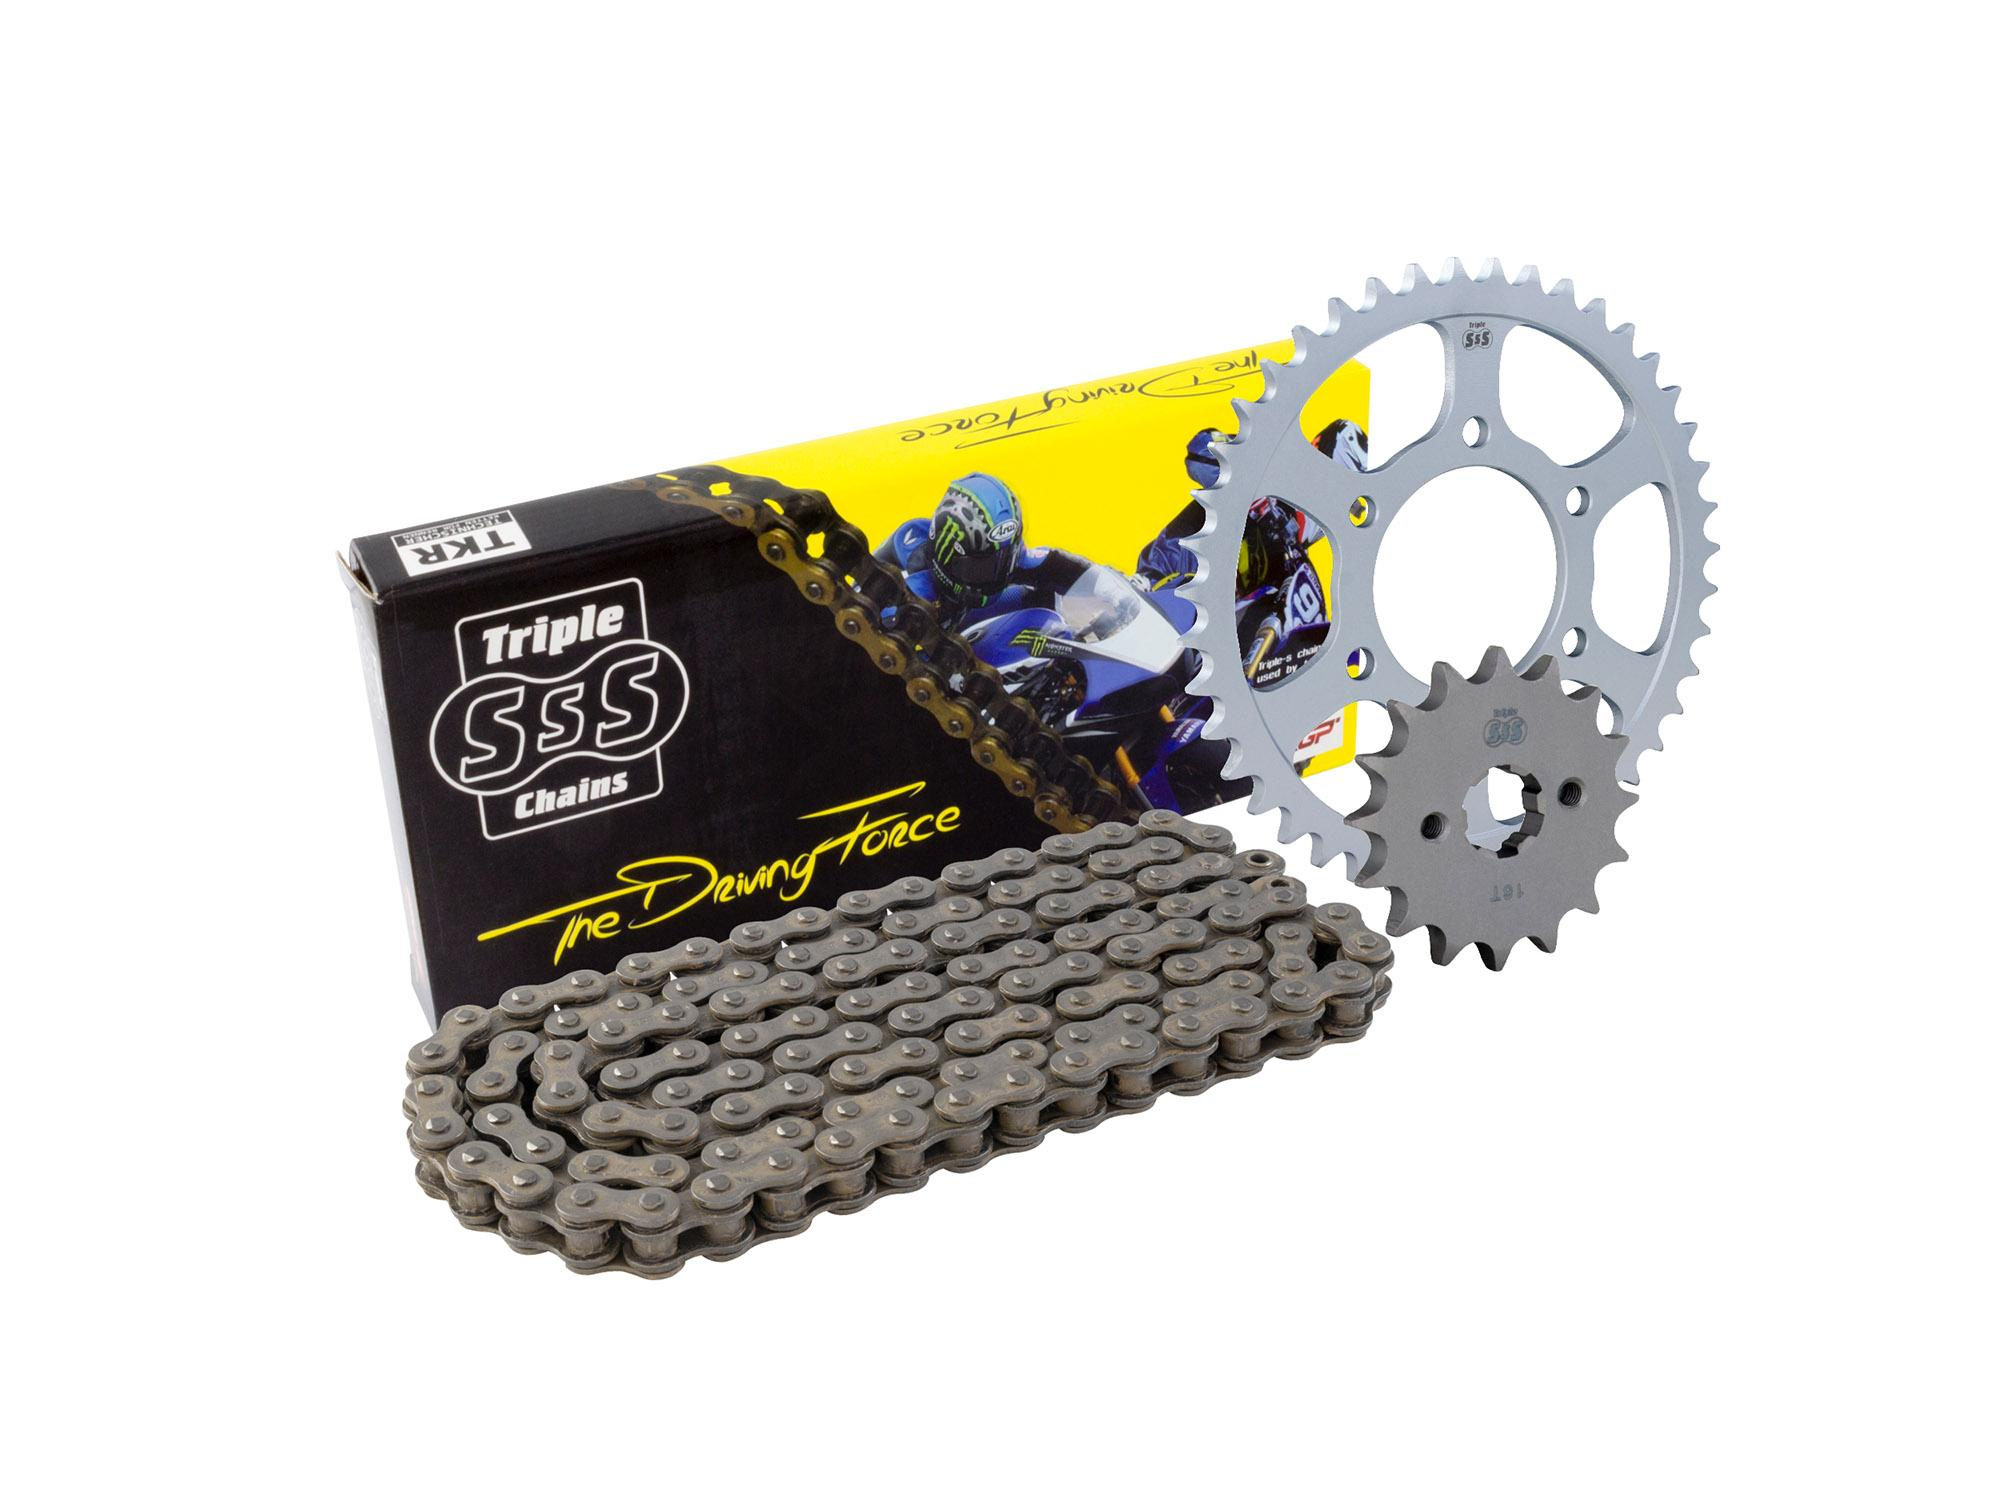 Cagiva 125 Mito Evolution 92-99 Chain & Sprocket Kit: 14T Front, 41T Rear, HD O-Ring Black Chain 520H 114Link